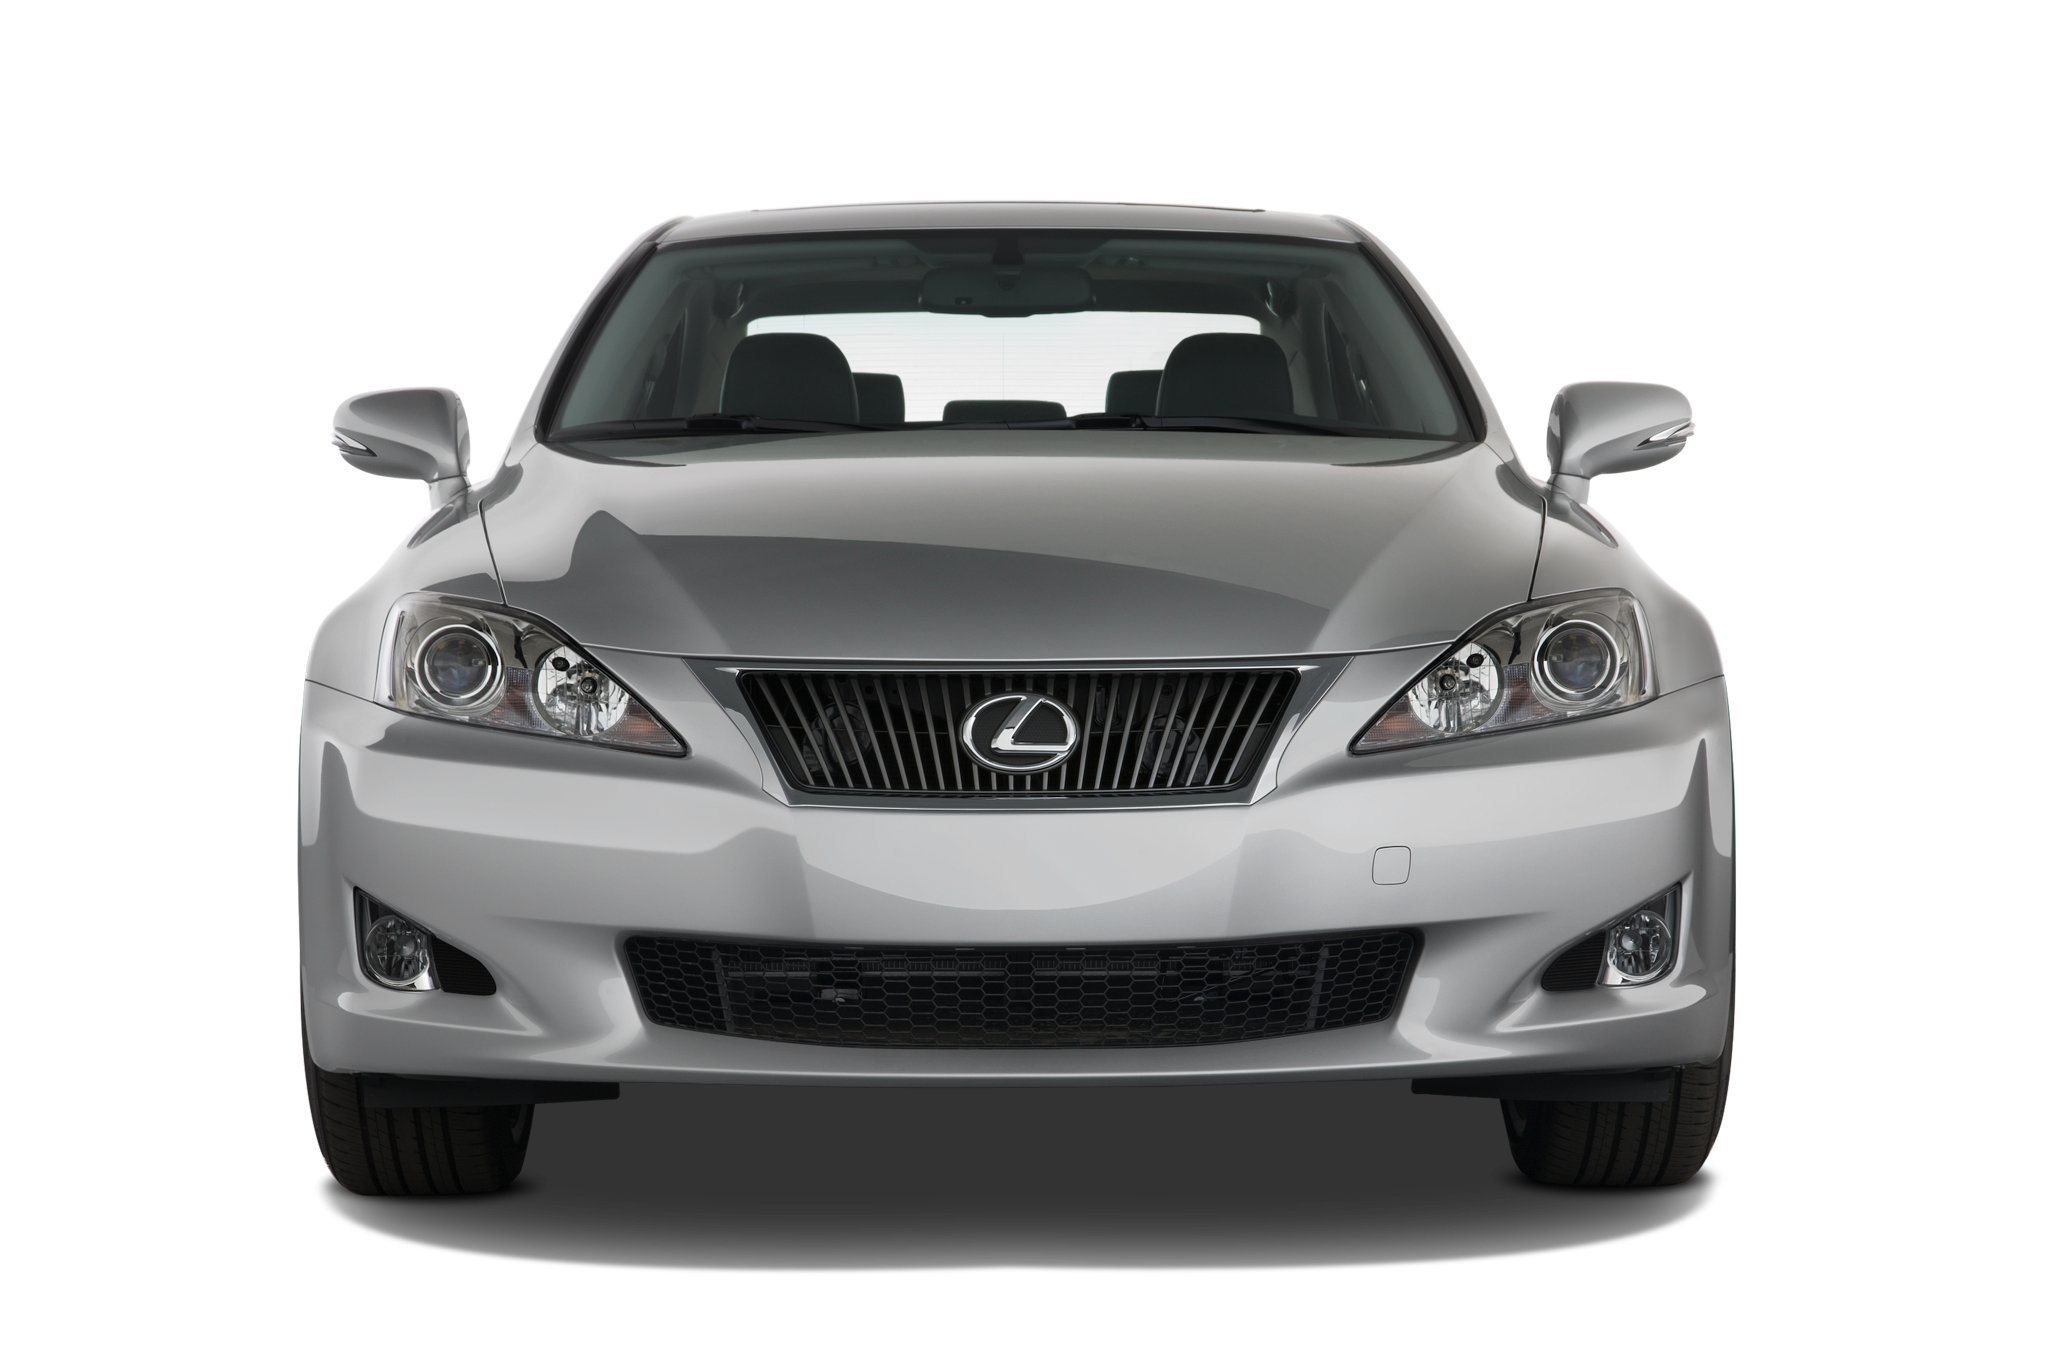 2010 lexus is 250 c lexus luxury convertible review automobile magazine. Black Bedroom Furniture Sets. Home Design Ideas